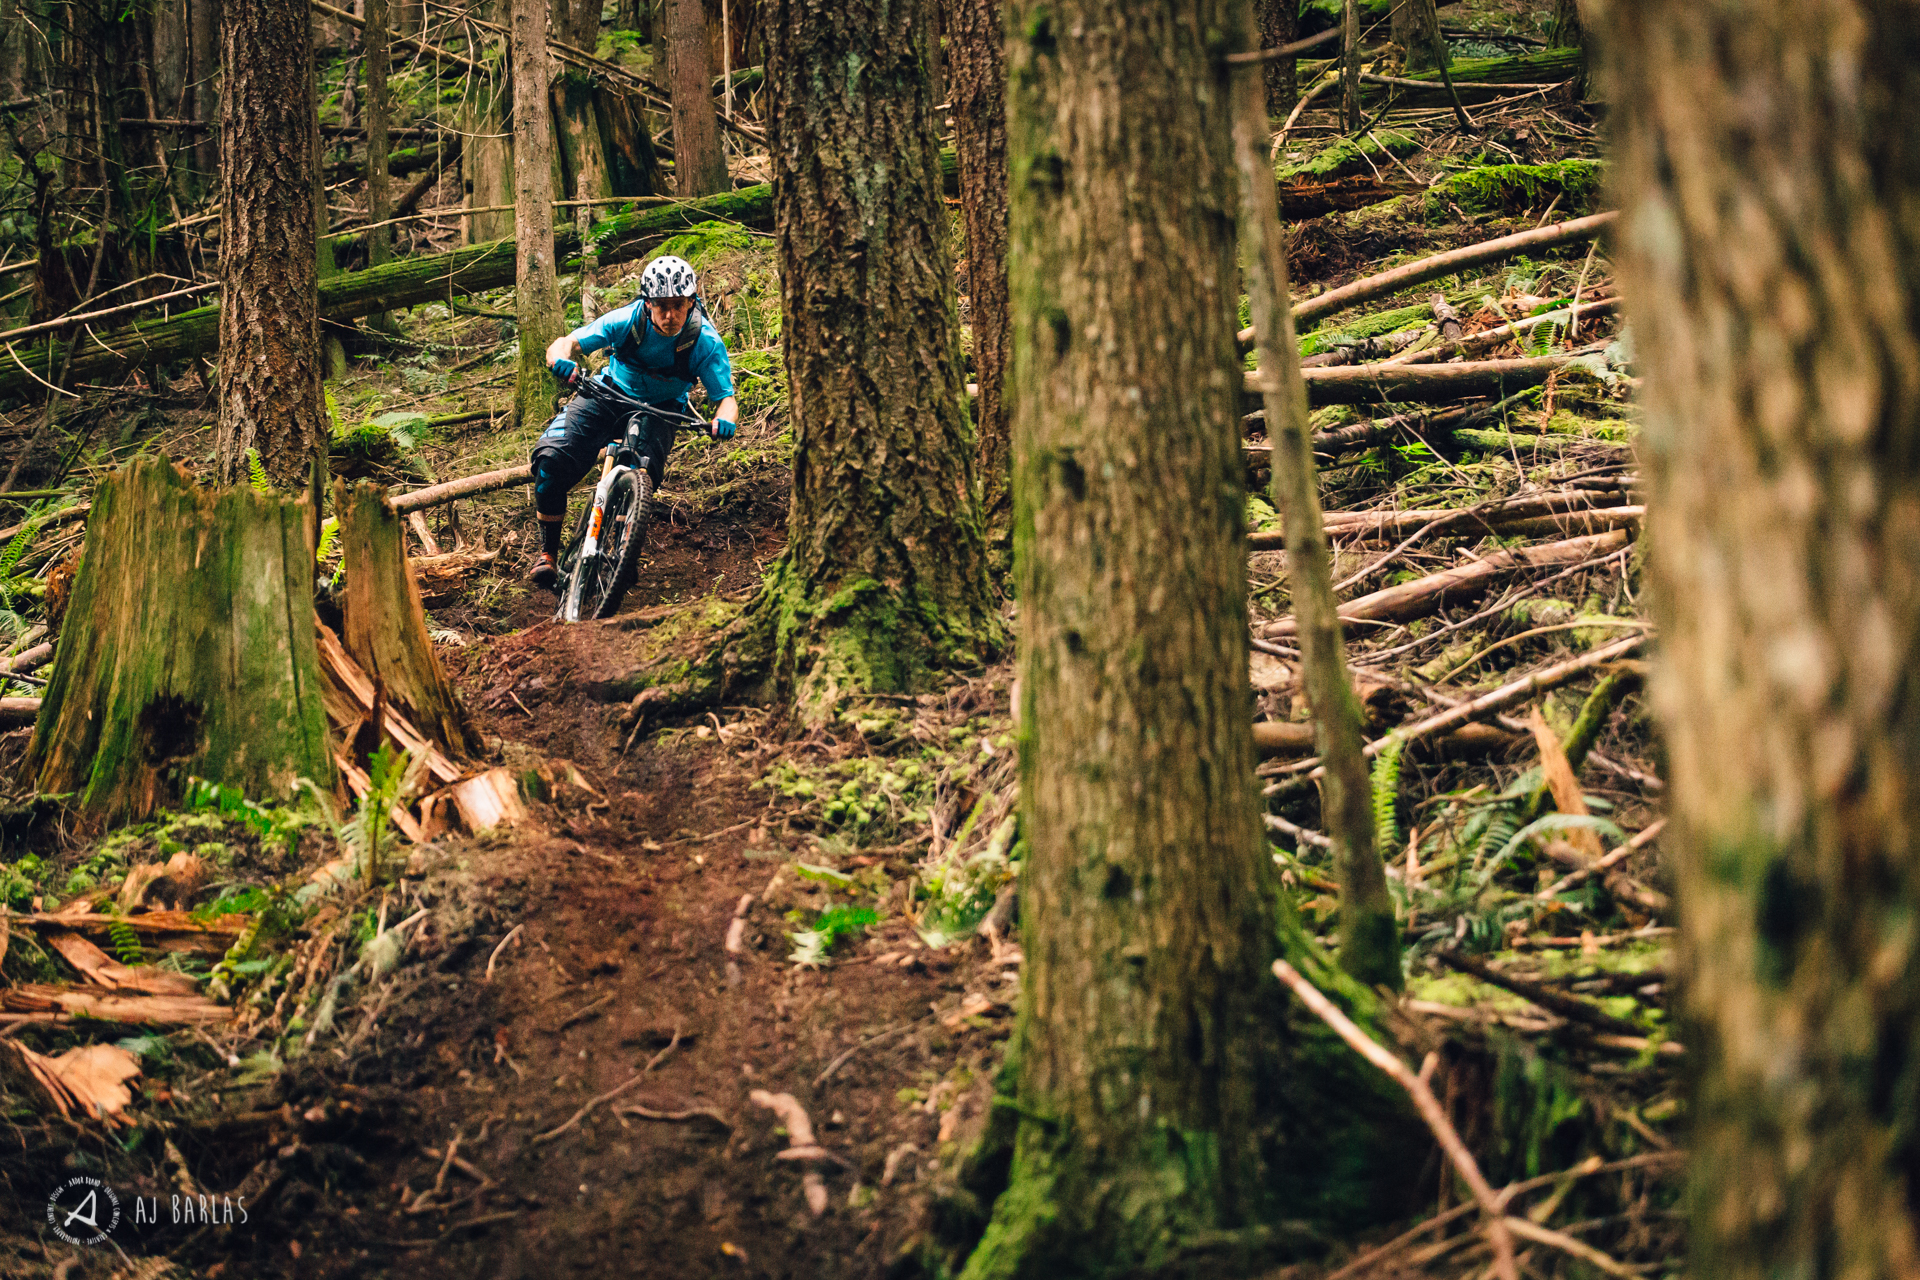 Davis railing some Squamish loam